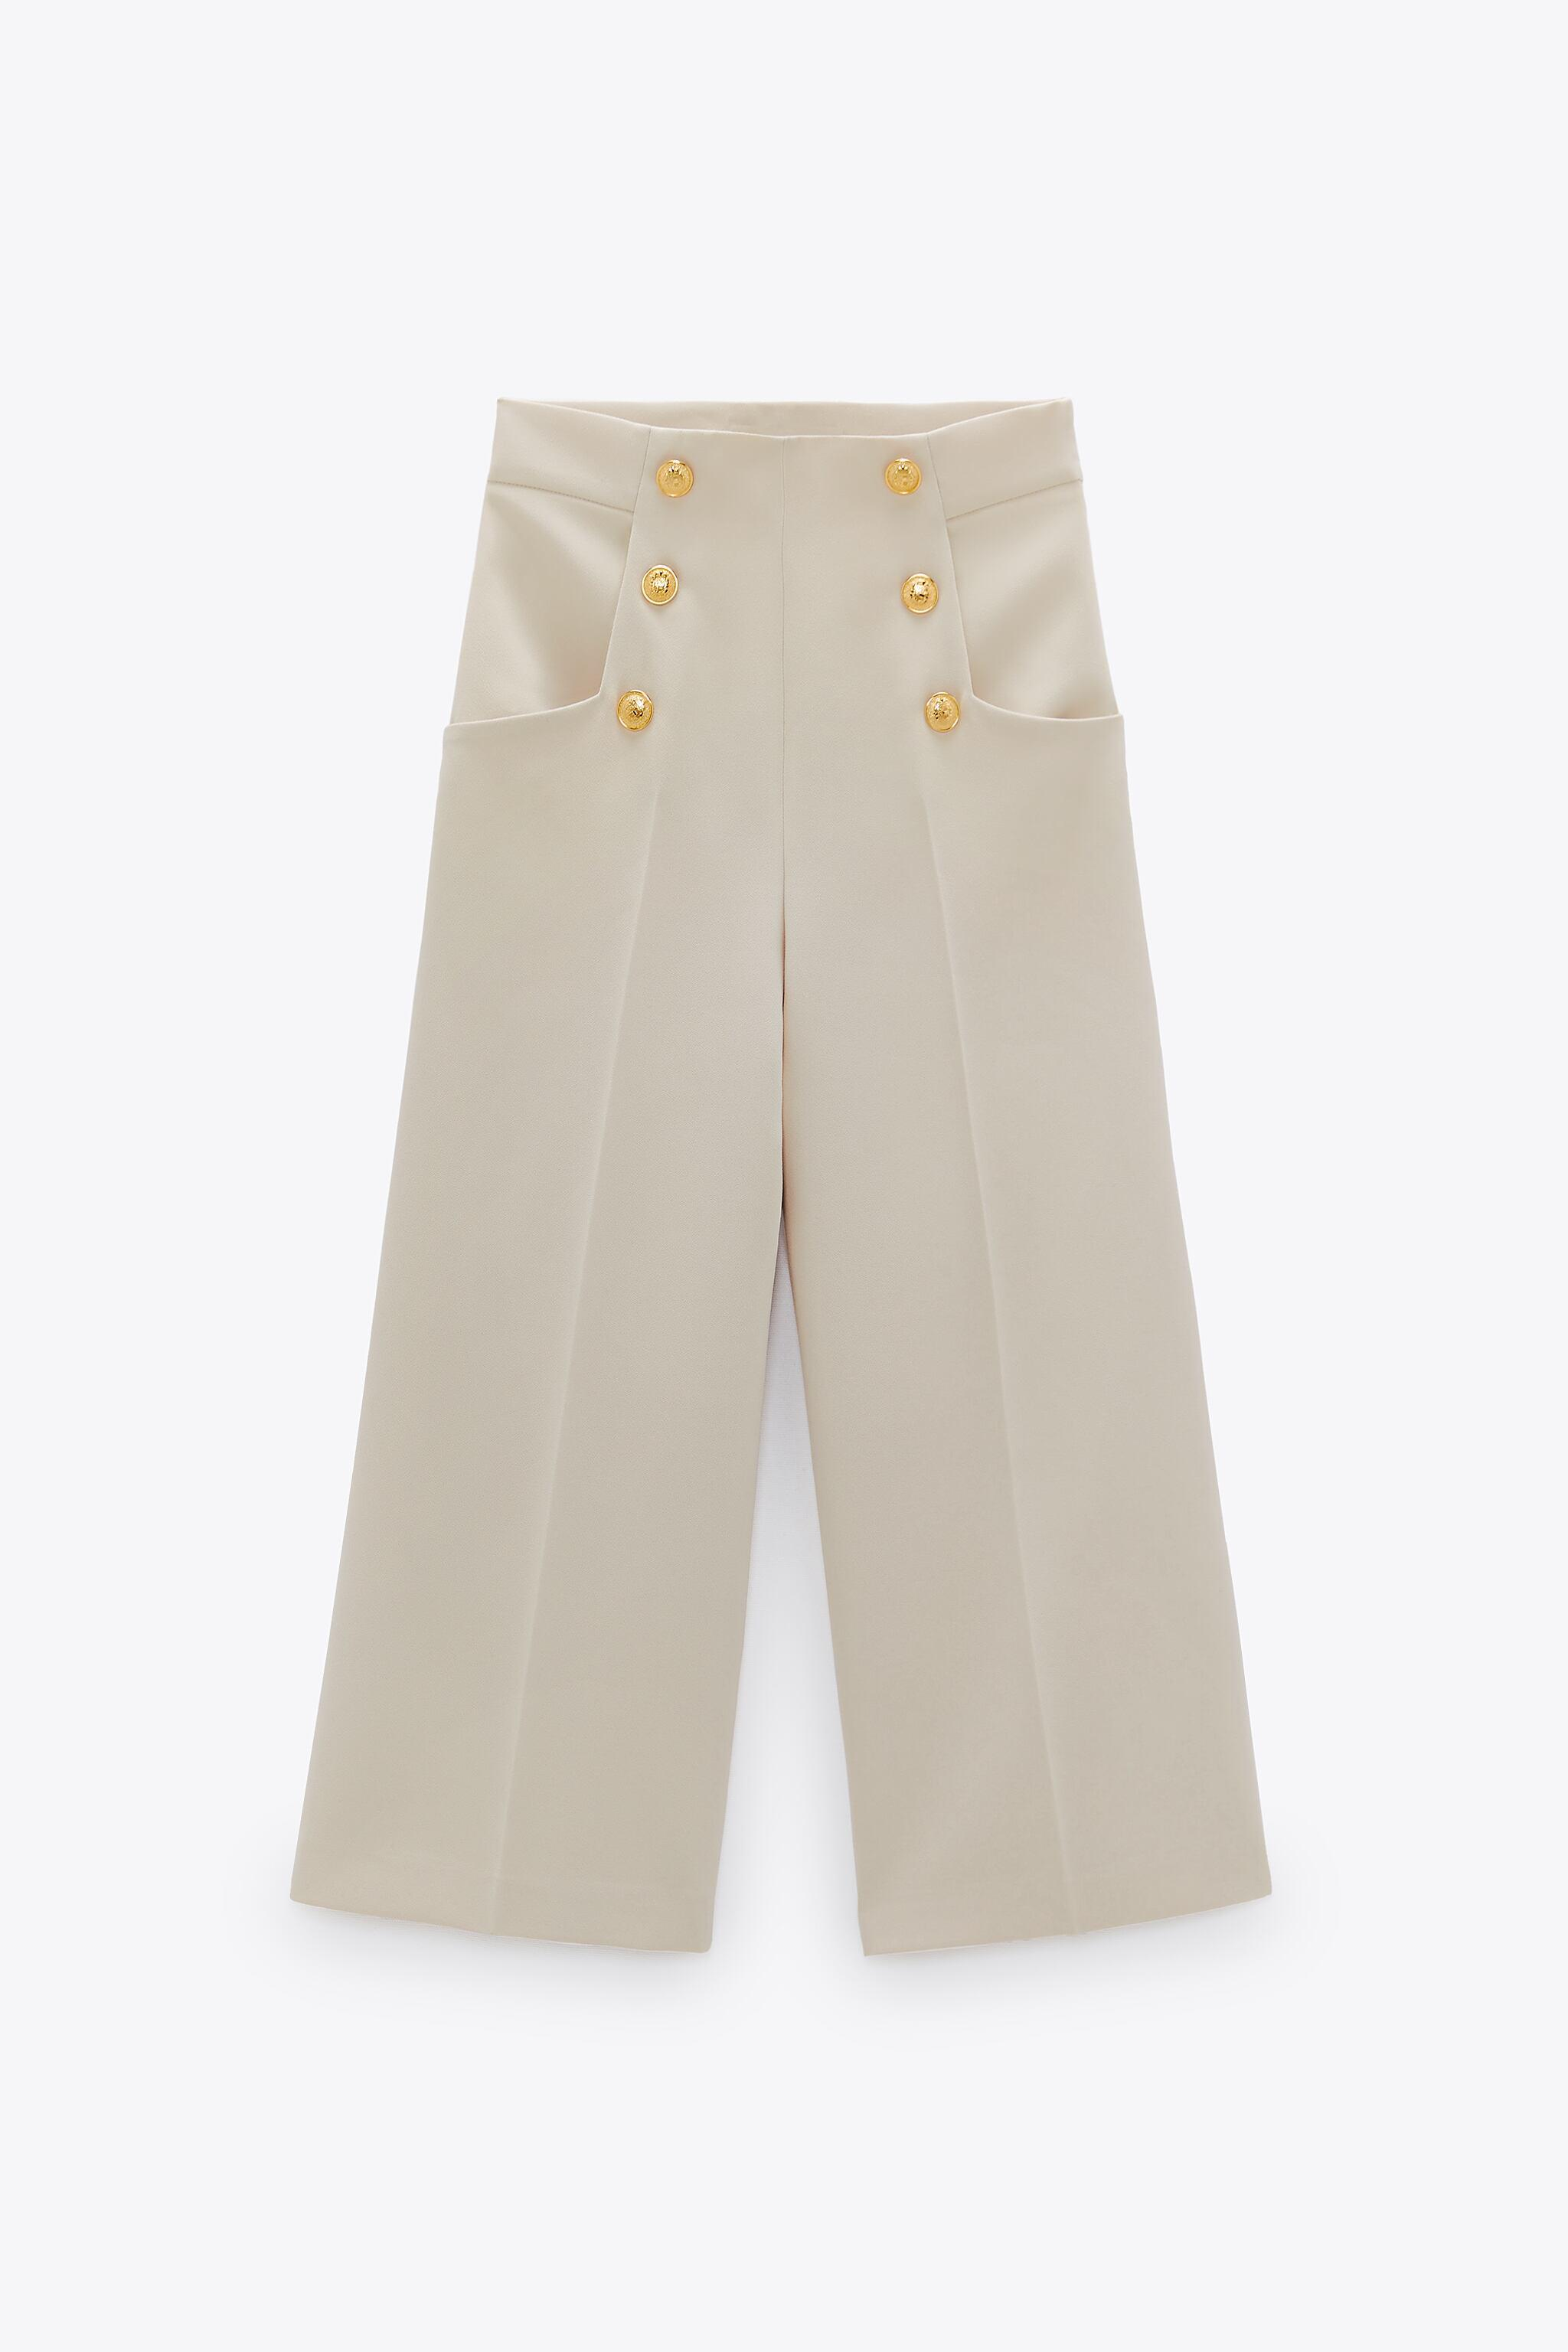 BUTTONED CULOTTES 5